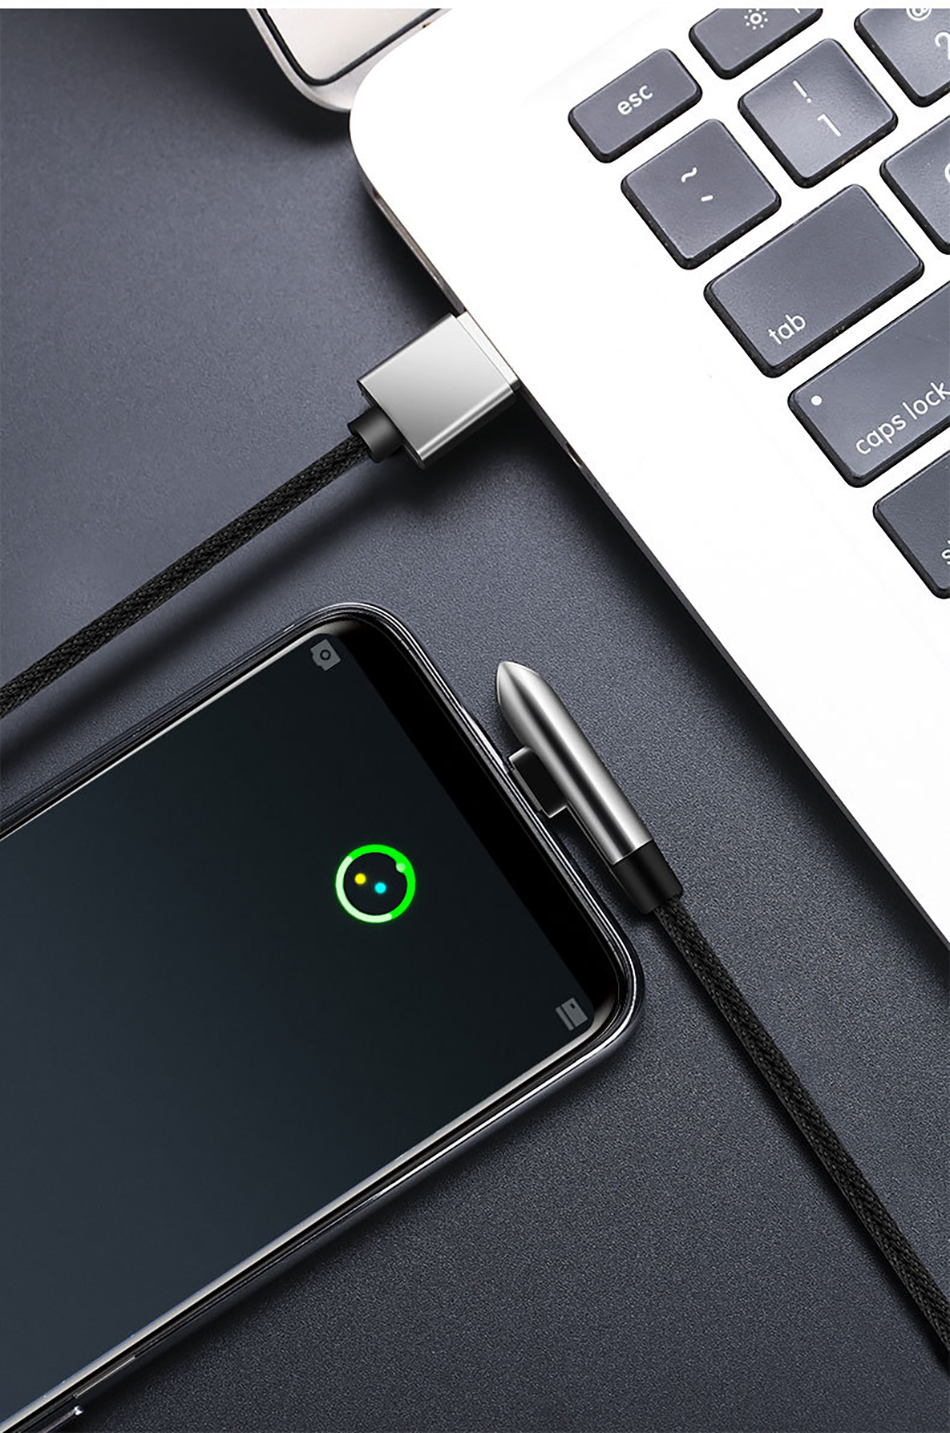 !ACCEZZ Elbow Micro USB Cable Fast Charging For Samsung S7 S6 Note 4 5 Edge Android Phone Data Cable For Xiaomi Redmi 4X Huawei  (14)